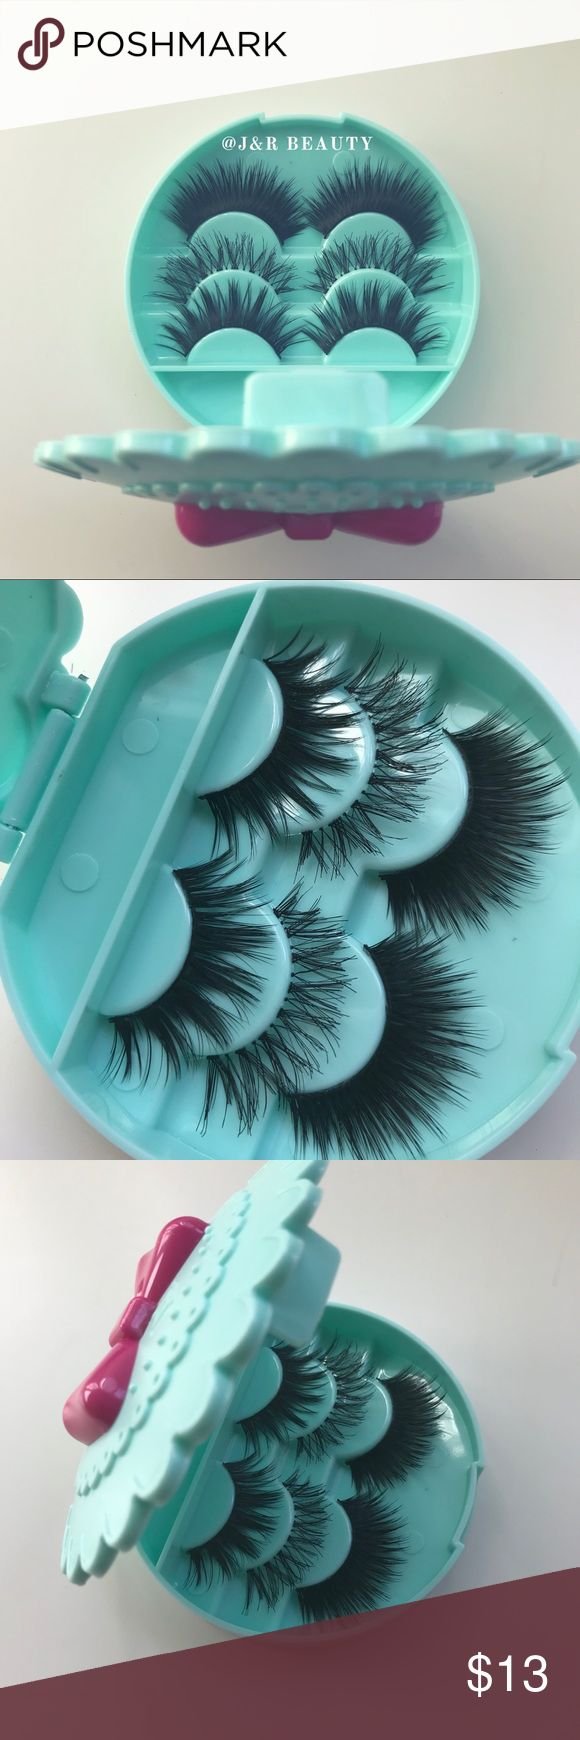 3 Eyelashes + Eyelash Case All brand new include ✨3 kinds of Wispy eyelashes  ✨Eyelash Case   +$2 Add on eyelash Applicator  +$3 Add on eyelash glue Please message me if you want to add them.    # tags Iconic, mink, red cherry eyelashes, house of lashes, doll, kawaii, case, full, natural,  Koko, Ardell, wispies, Demi , makeup,   Ship within 24 hours ❣️ Makeup False Eyelashes